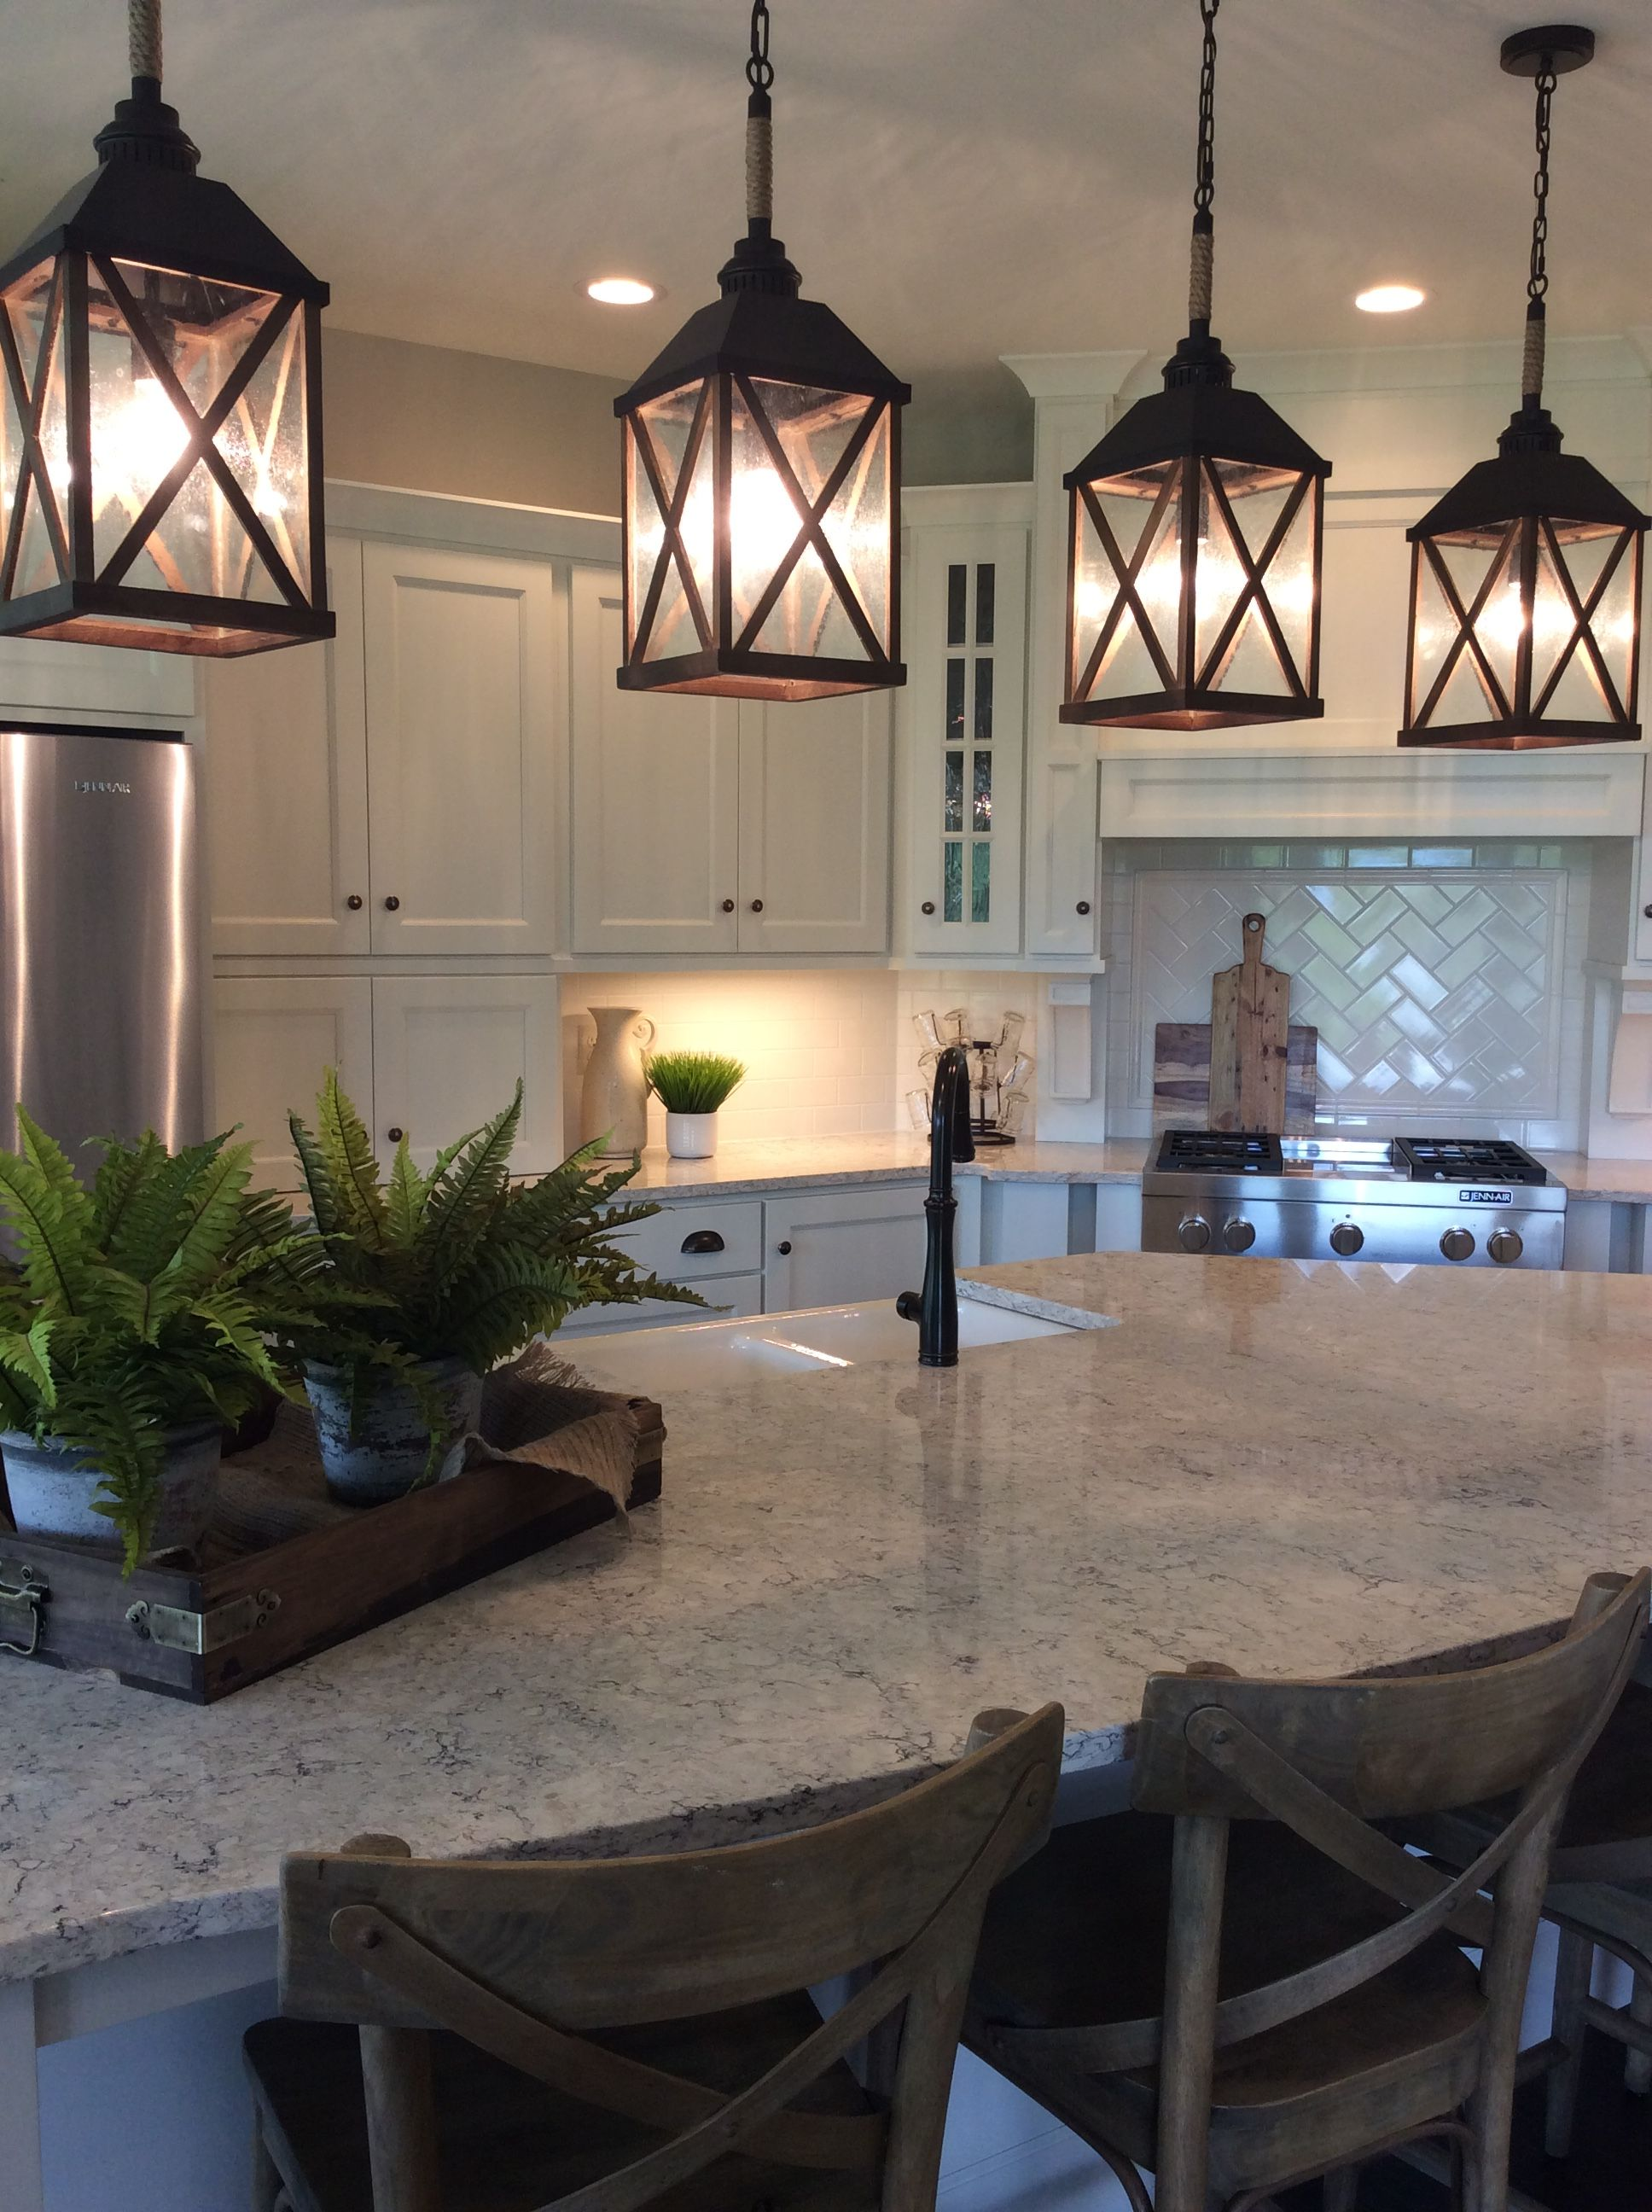 Classic Kitchen Lighting 49 Awesome Kitchen Lighting Fixture Ideas Home Decor Kitchen